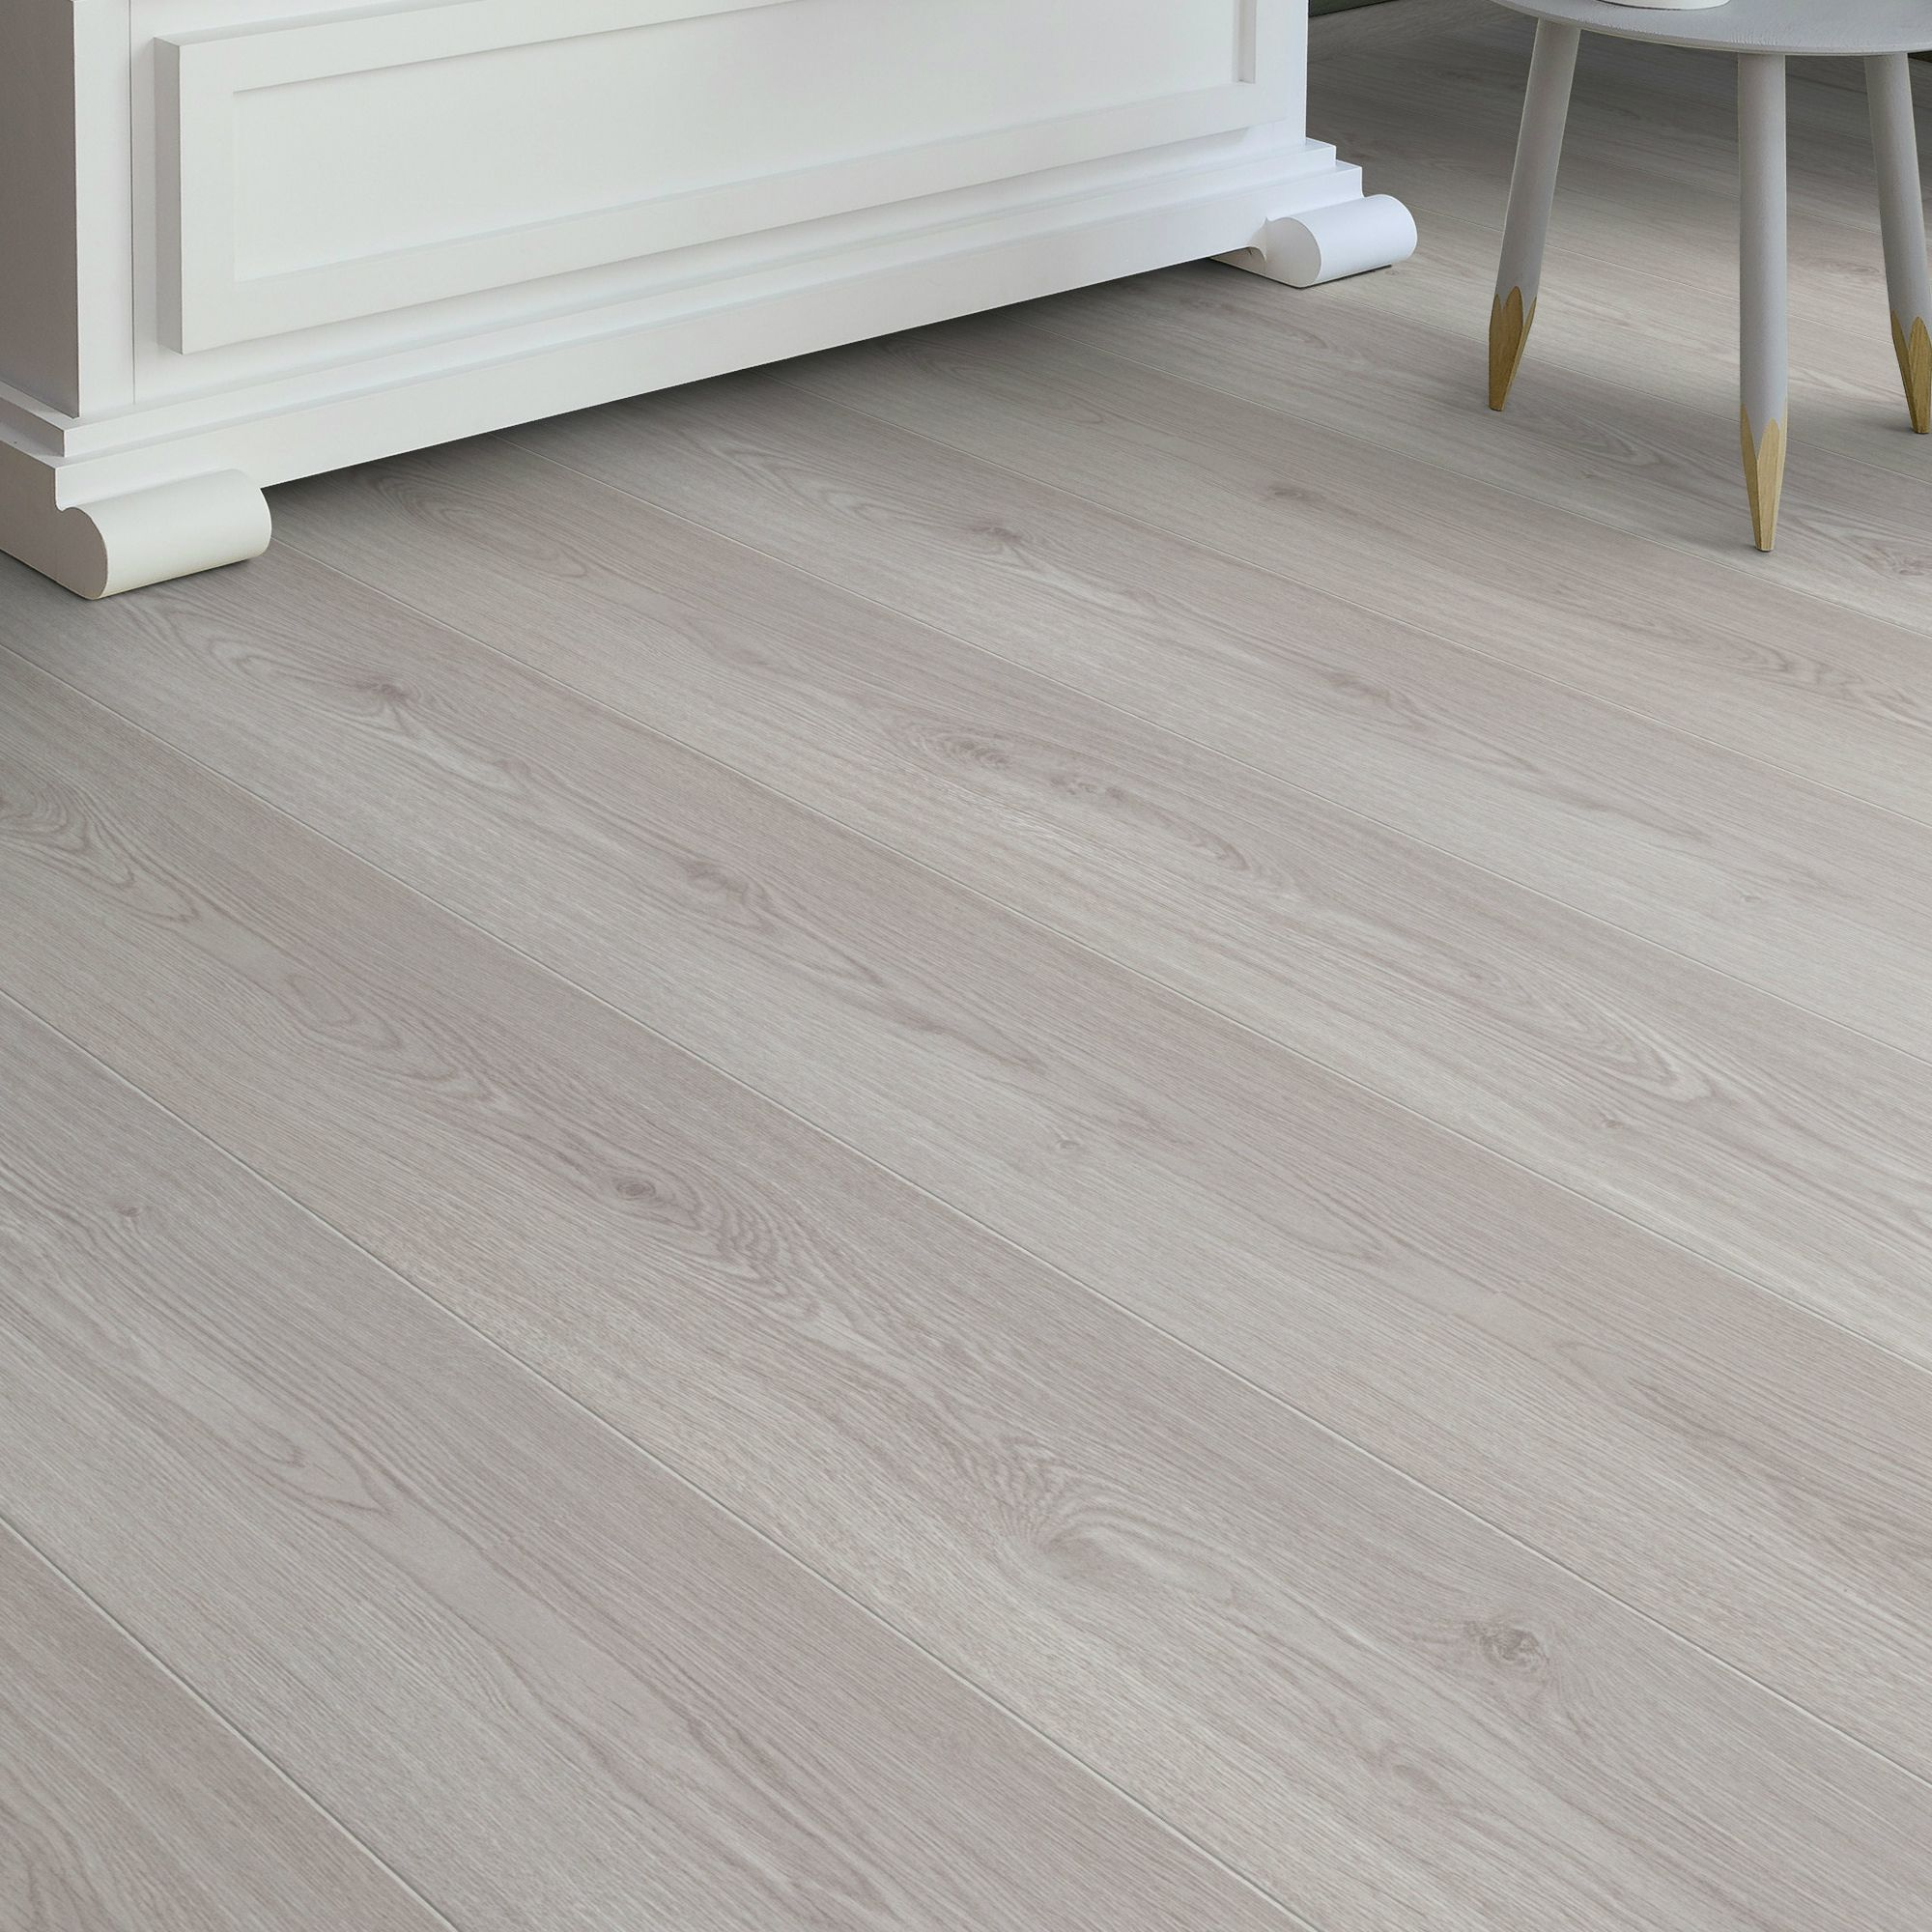 Cardross Grey Oak Effect Laminate Flooring 214 M Pack -